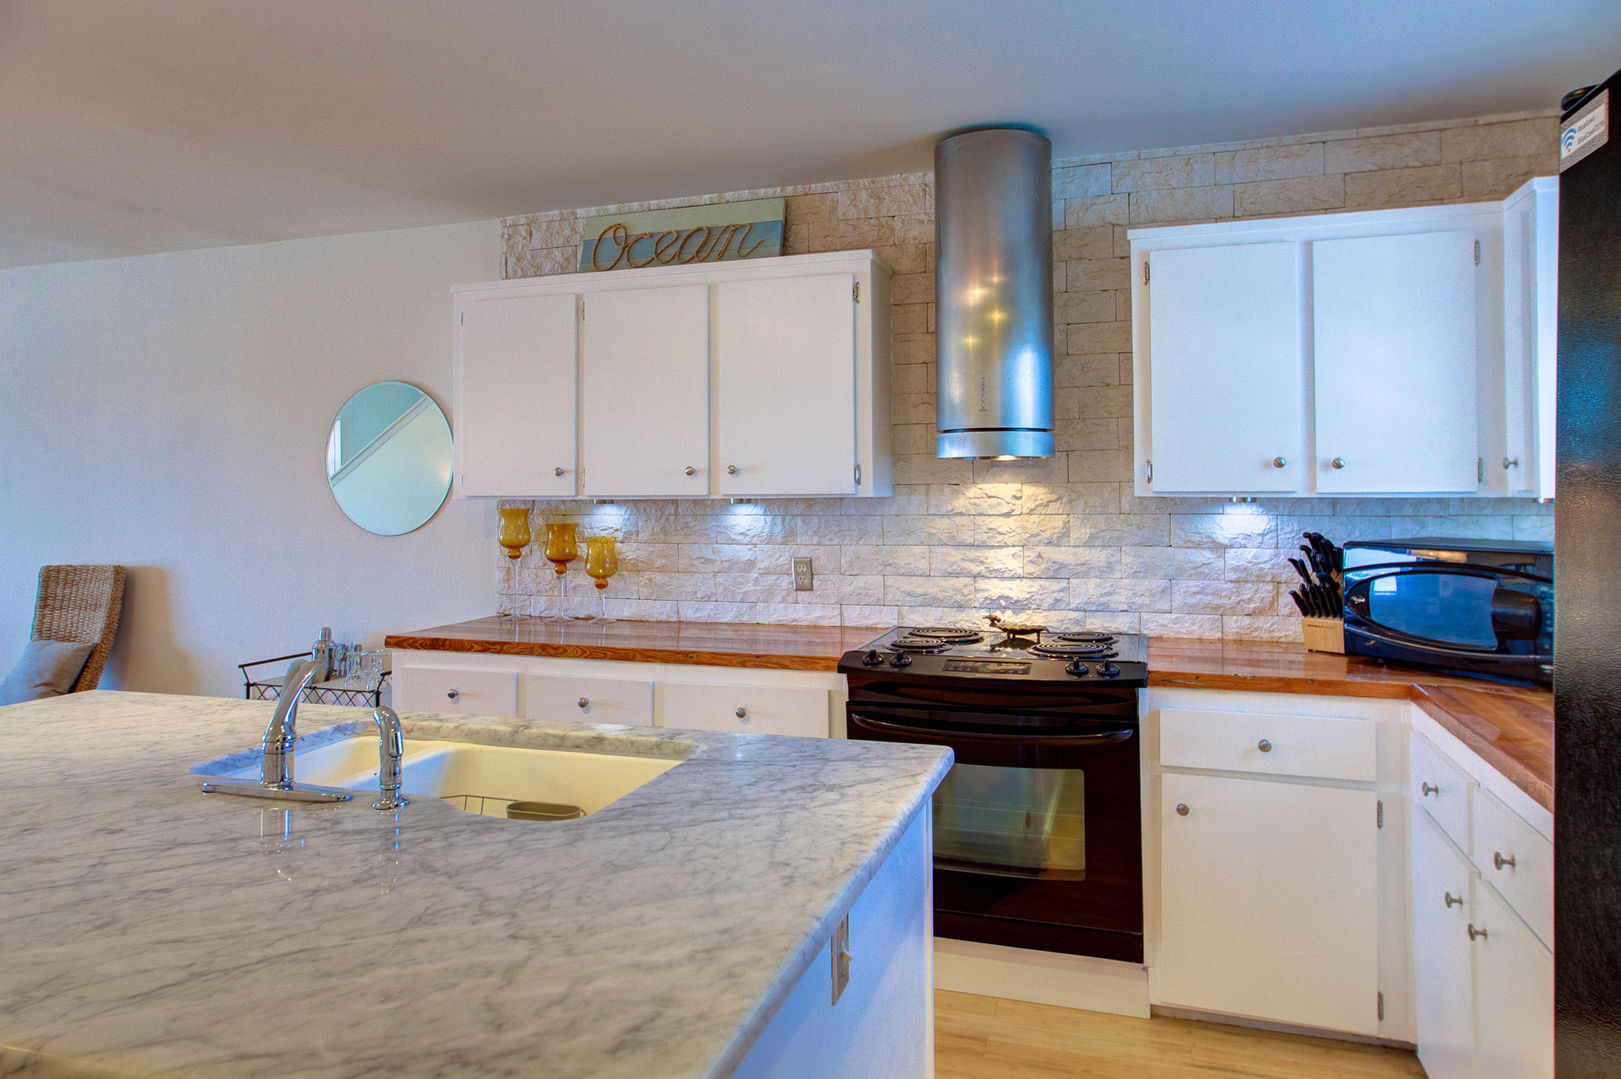 Luxury Kitchen Features Plenty of Counter and Cabinet Space.